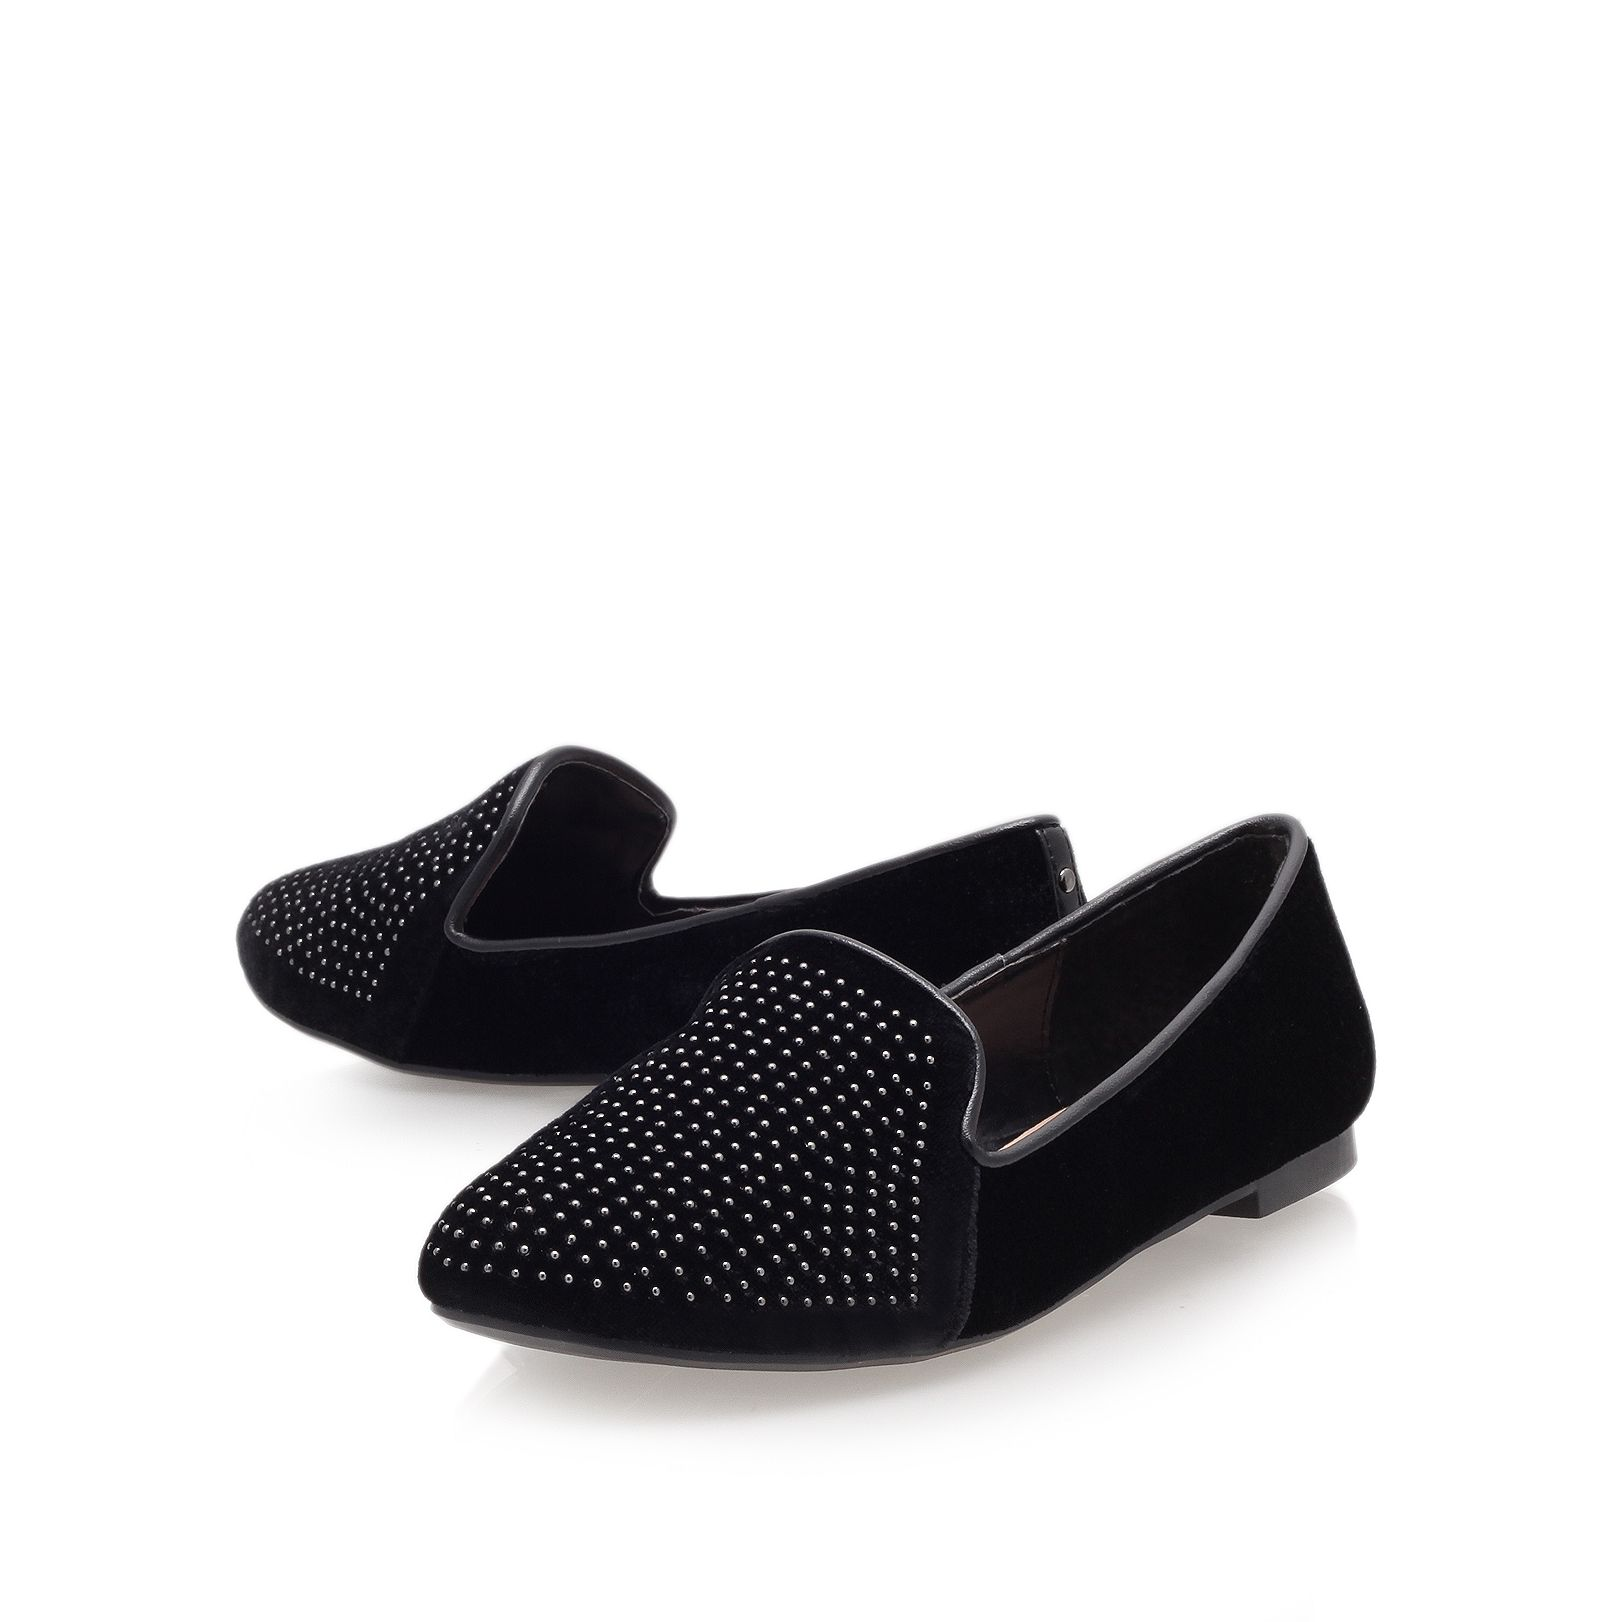 Maddox flat slipper shoes